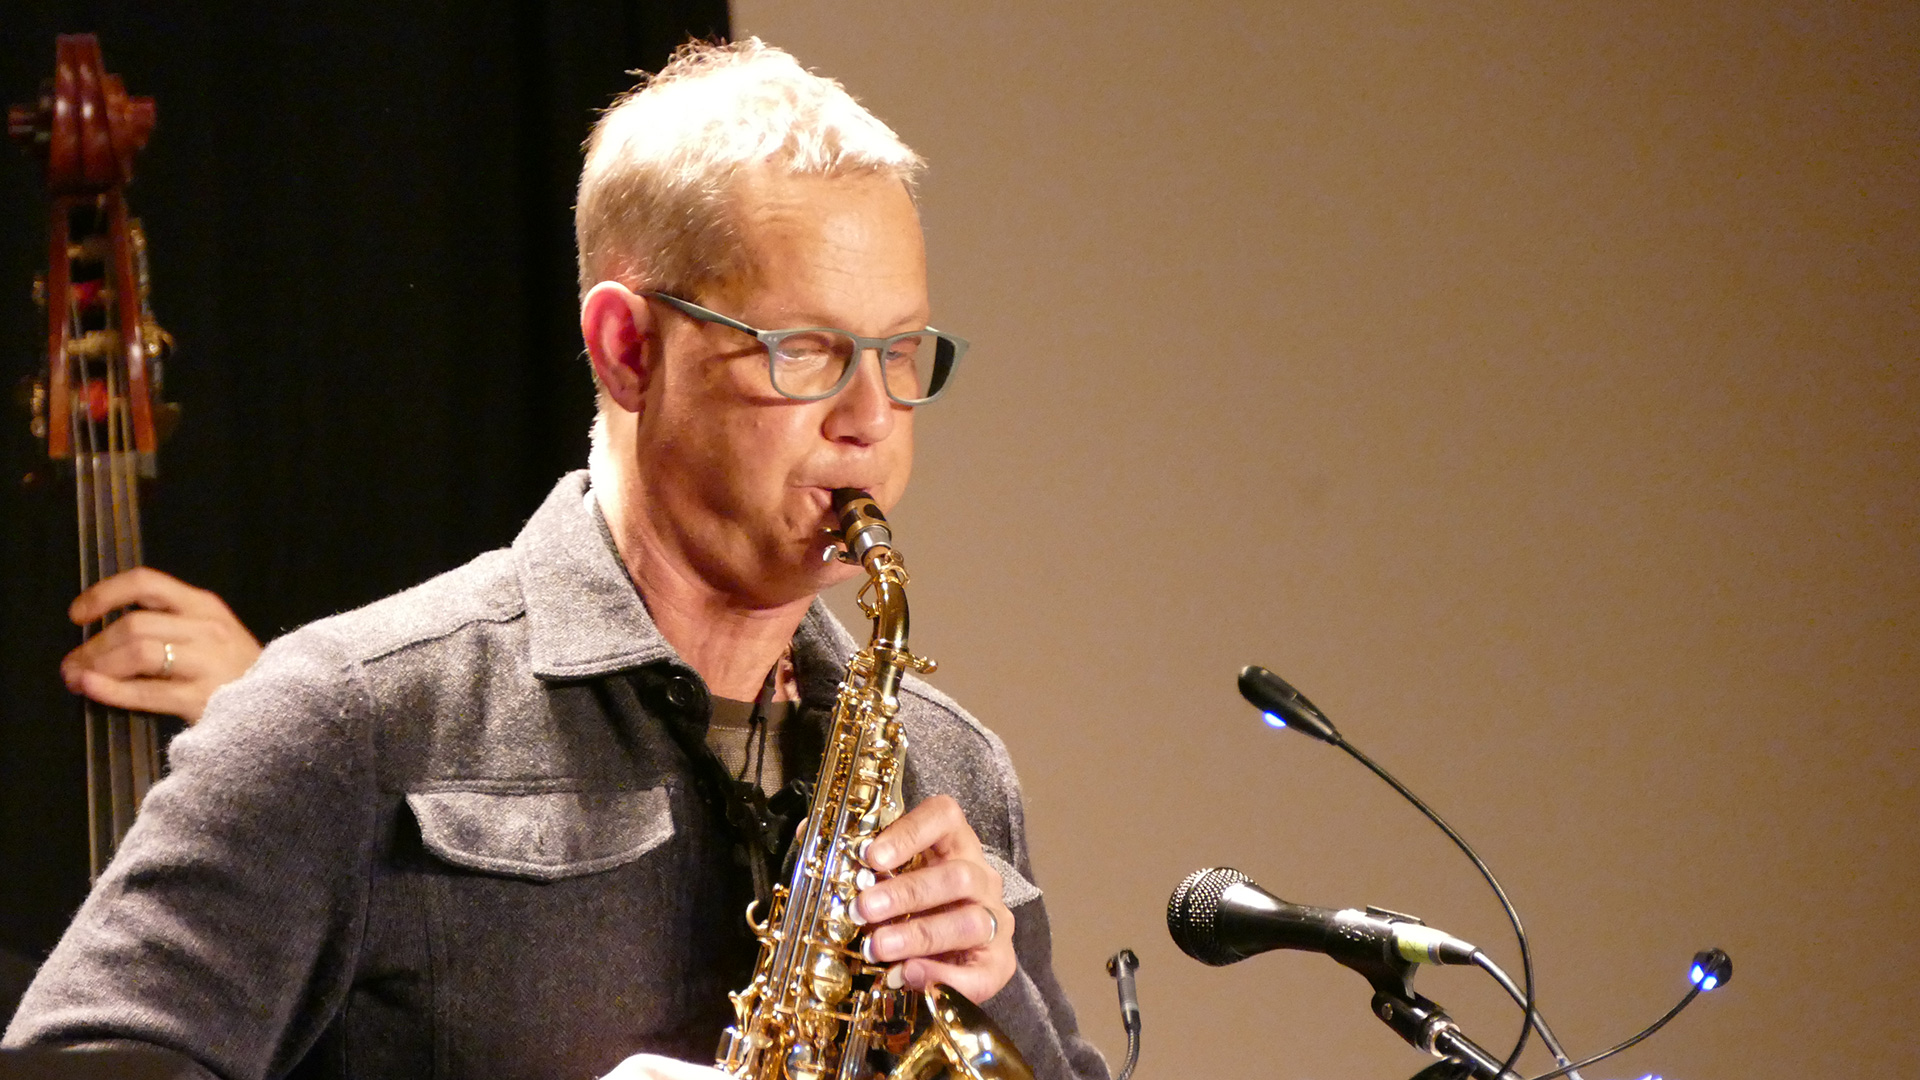 Benjamin Boone during 'The Poetry of Jazz, Vol. 2' release concert